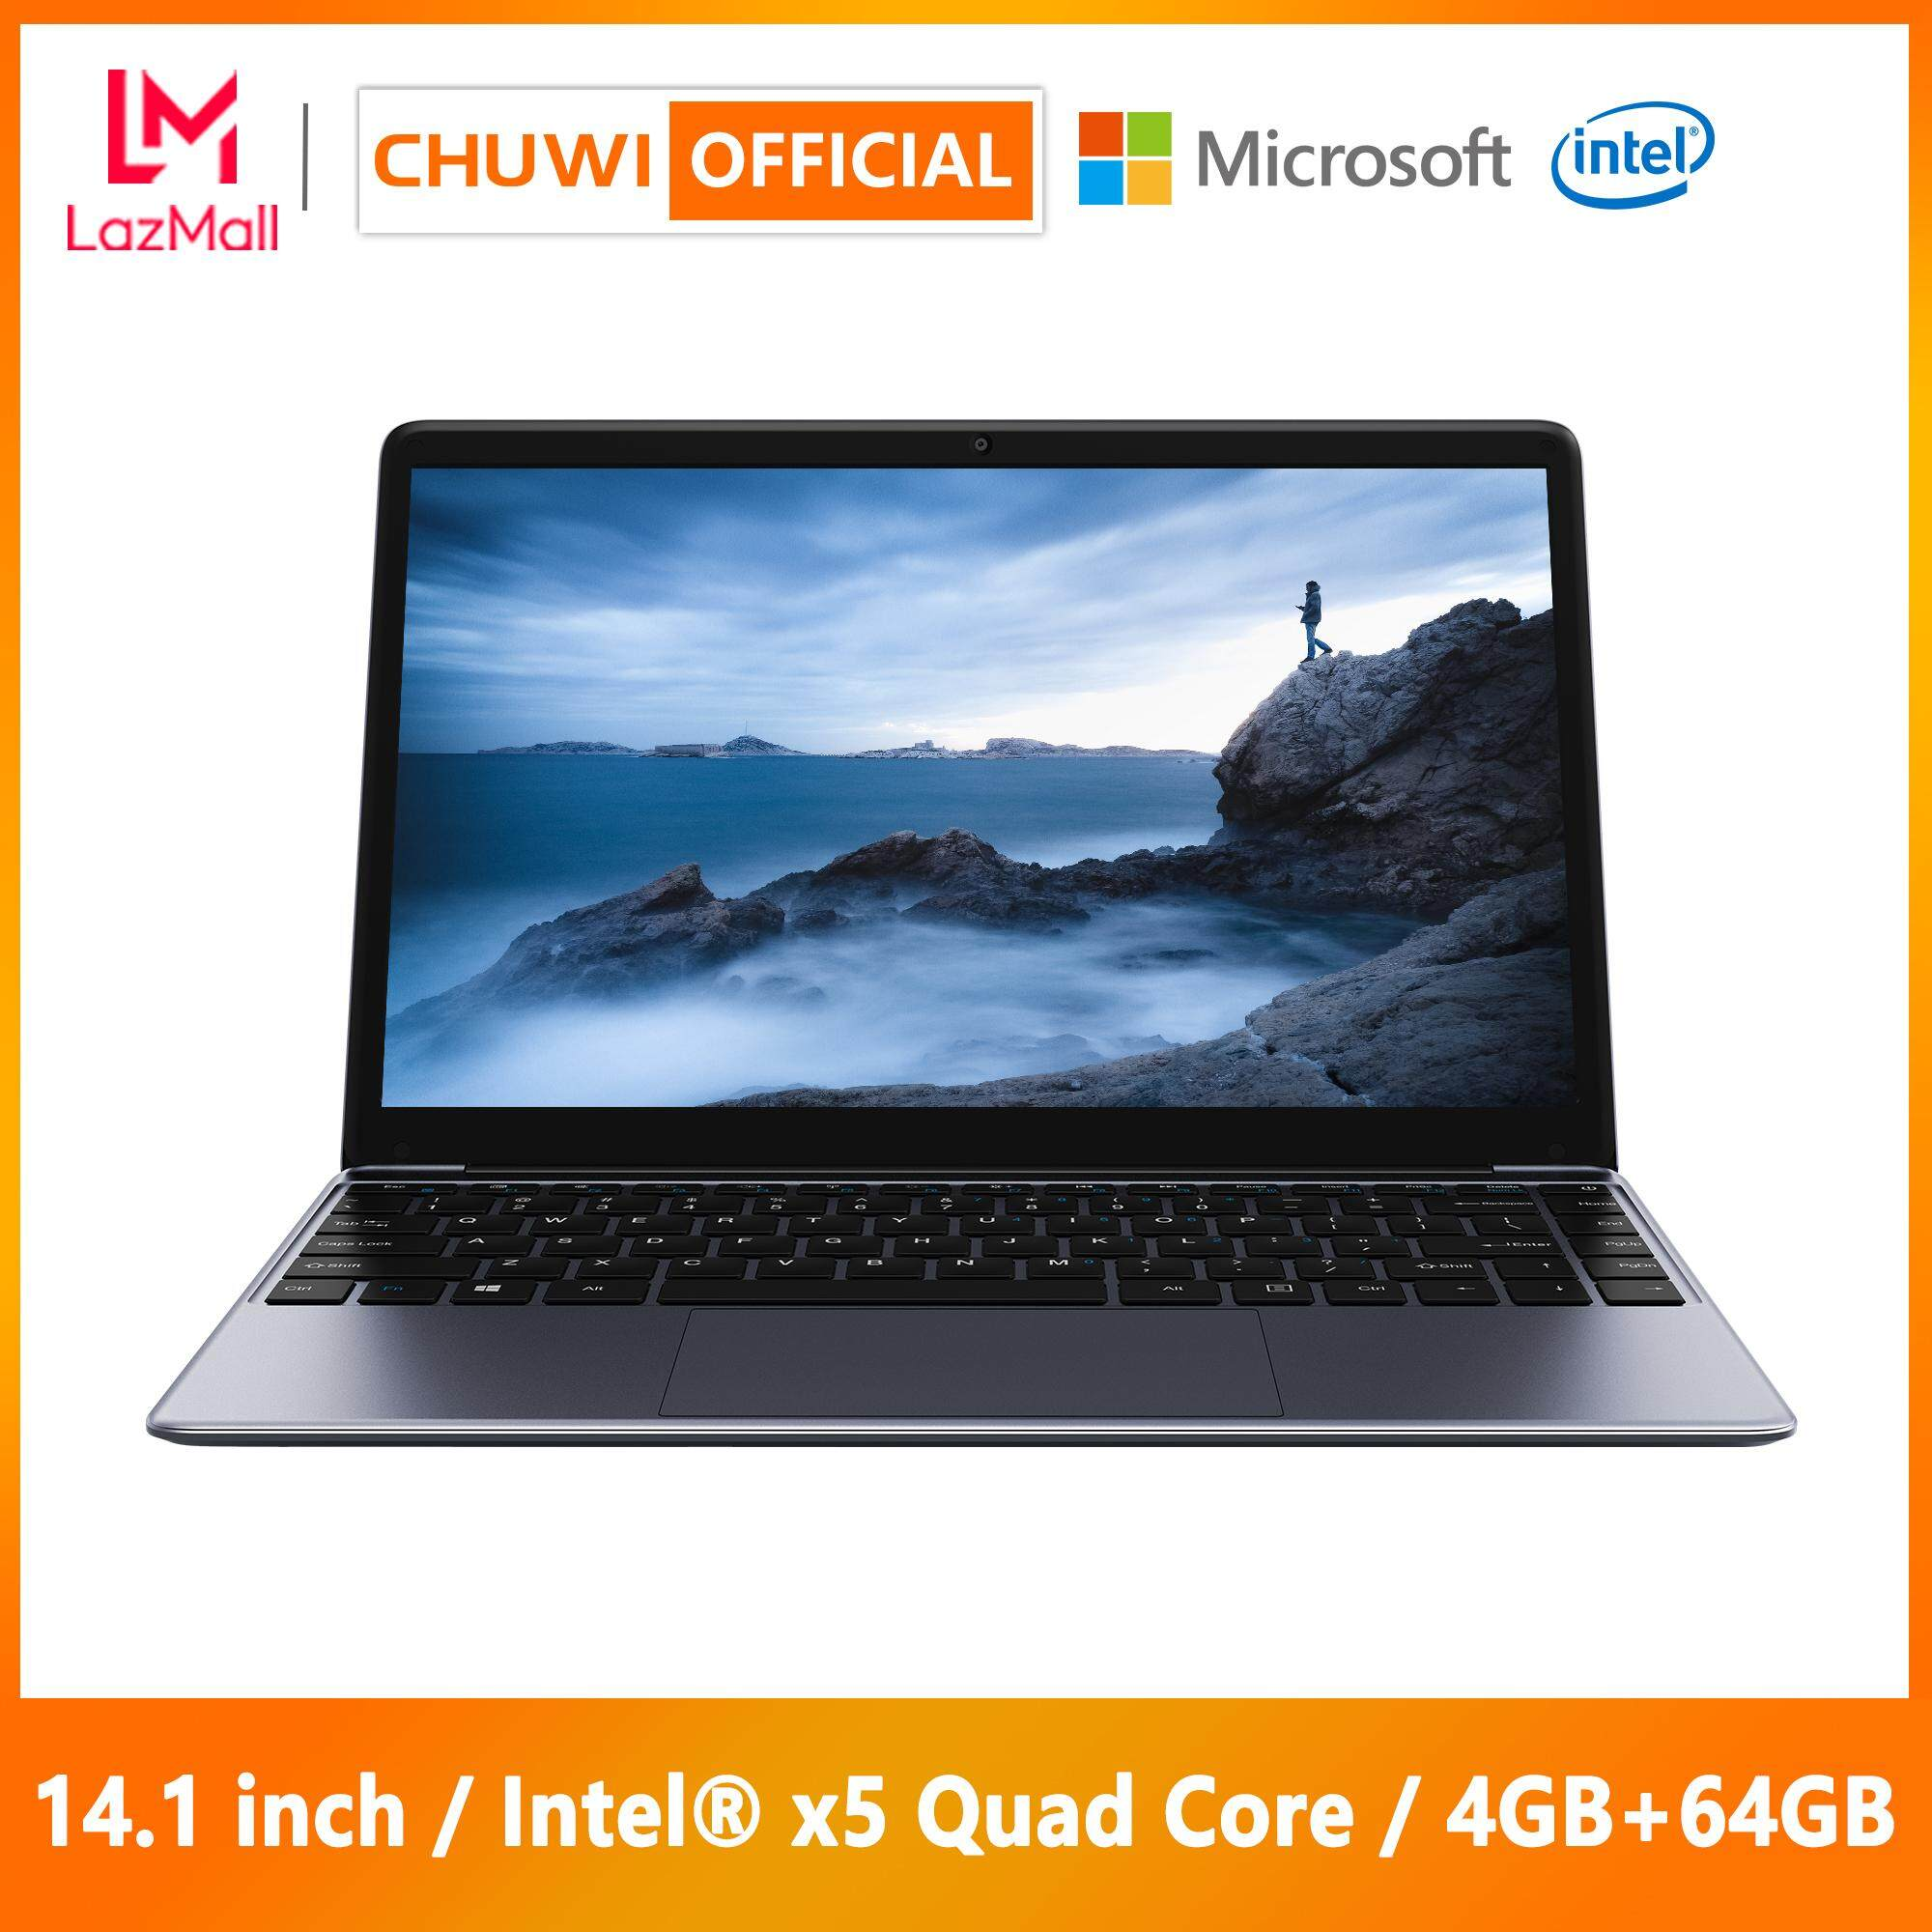 【CHUWI OFFICIAL】HeroBook Laptop / 14 1 Inch 1920*1080 / Intel® x5 CPU /  Genuine Windows 10 / Borderless Keyboard / 4GB+64GB / 1 Year Warranty